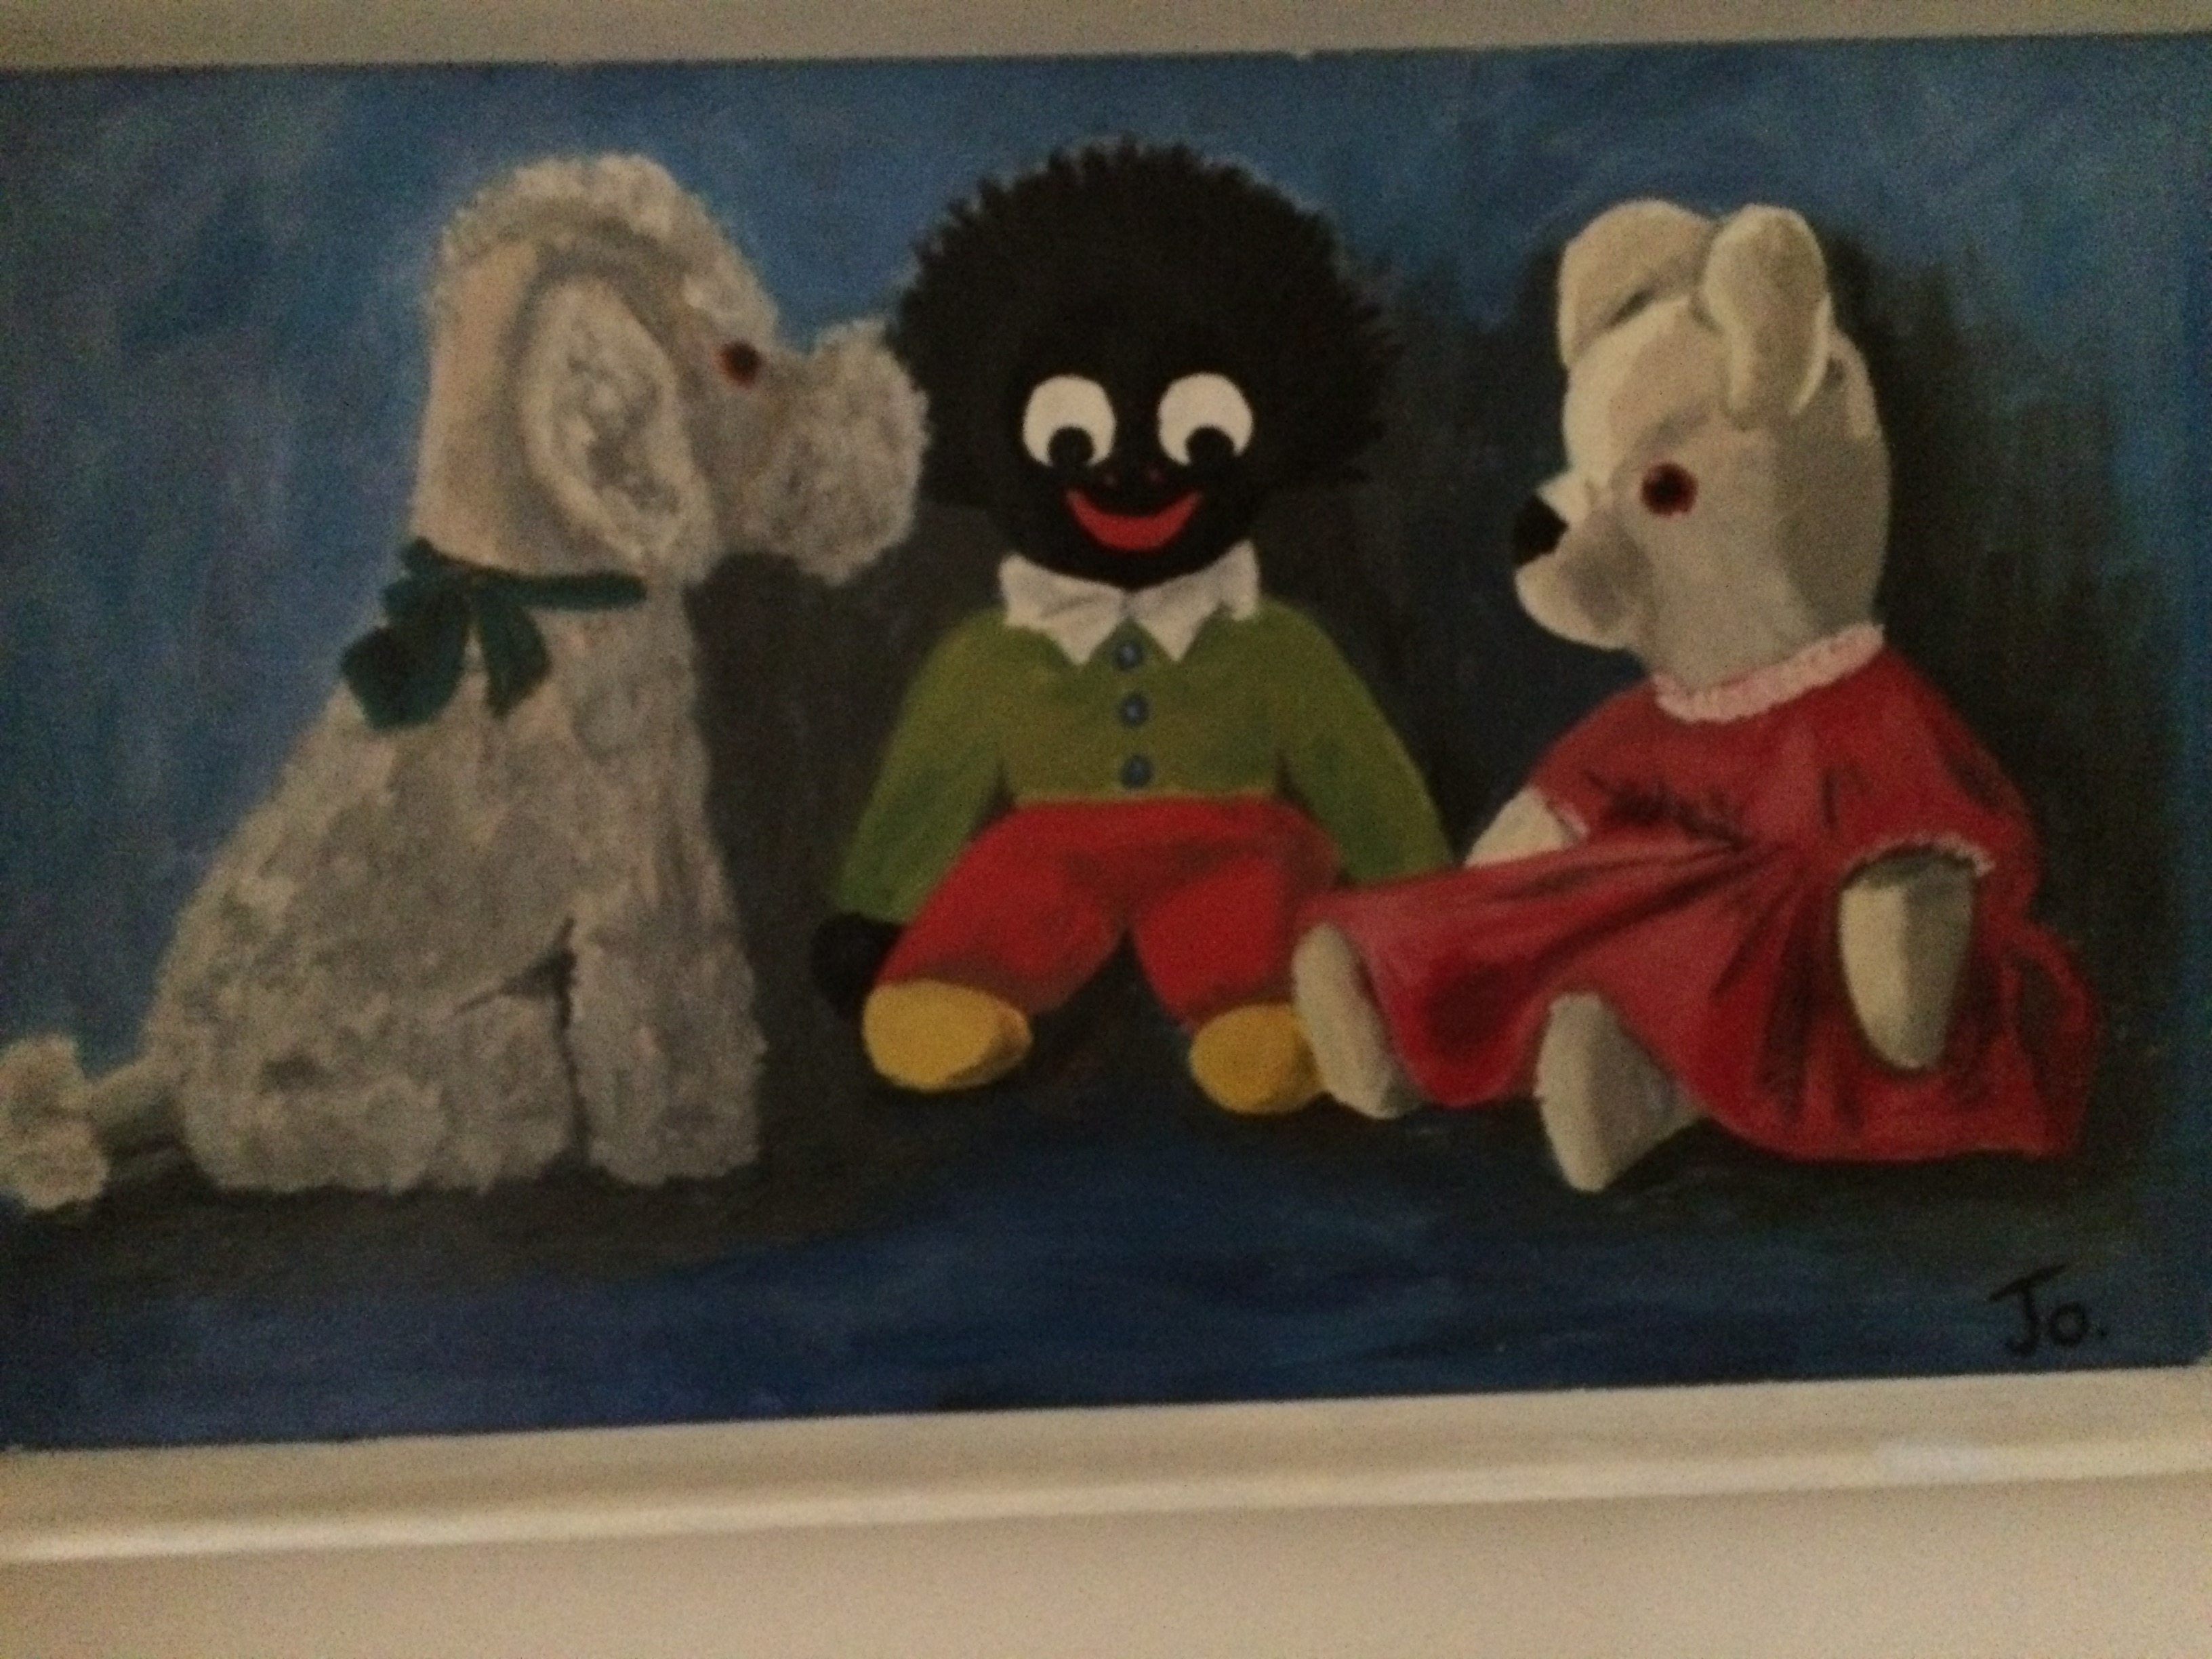 Poodle and Golliwog